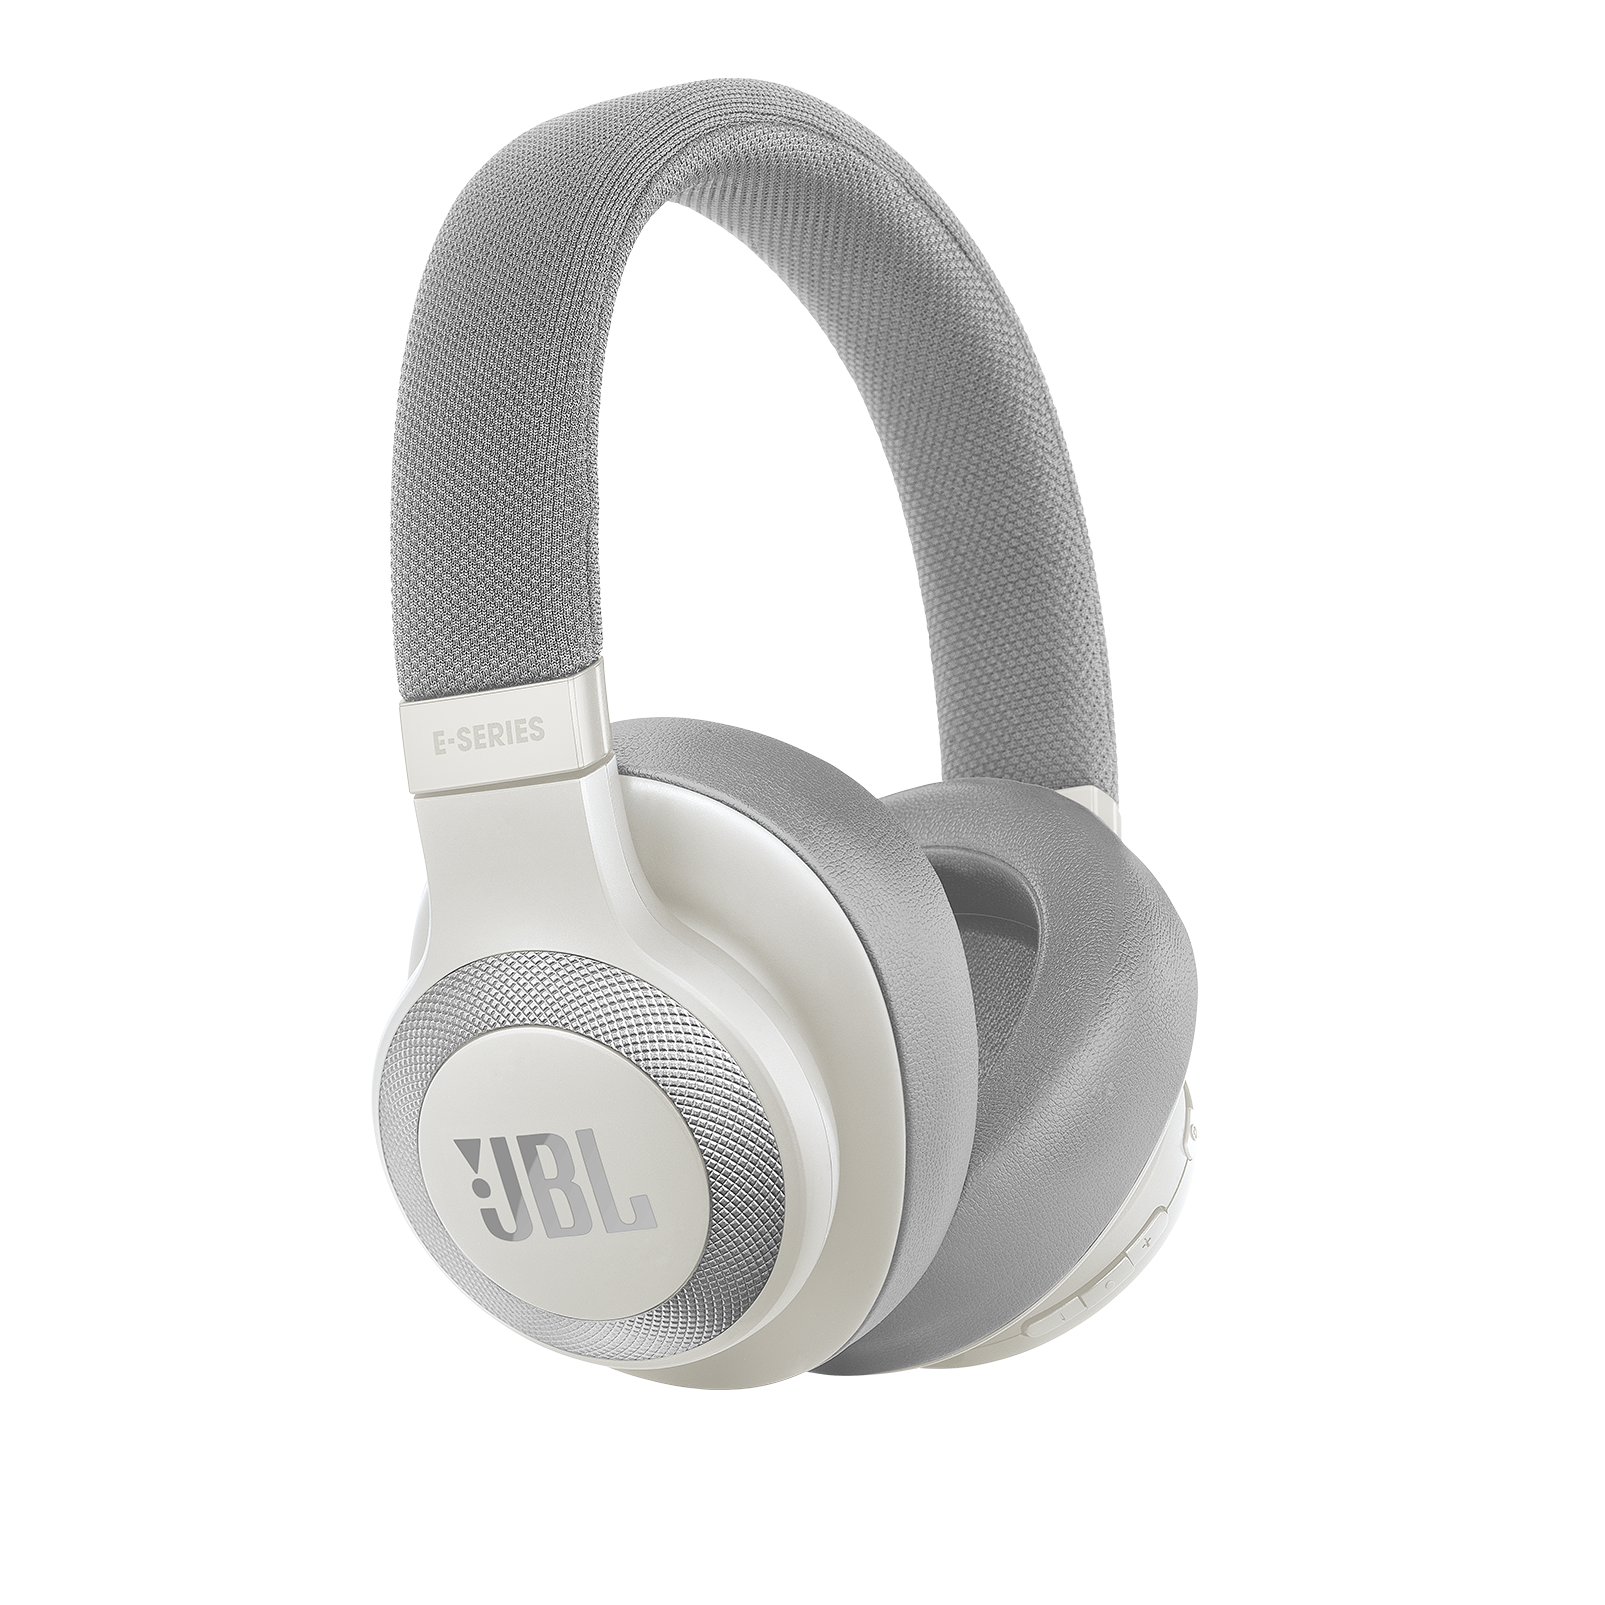 JBL E65BTNC - White - Wireless over-ear noise-cancelling headphones - Hero